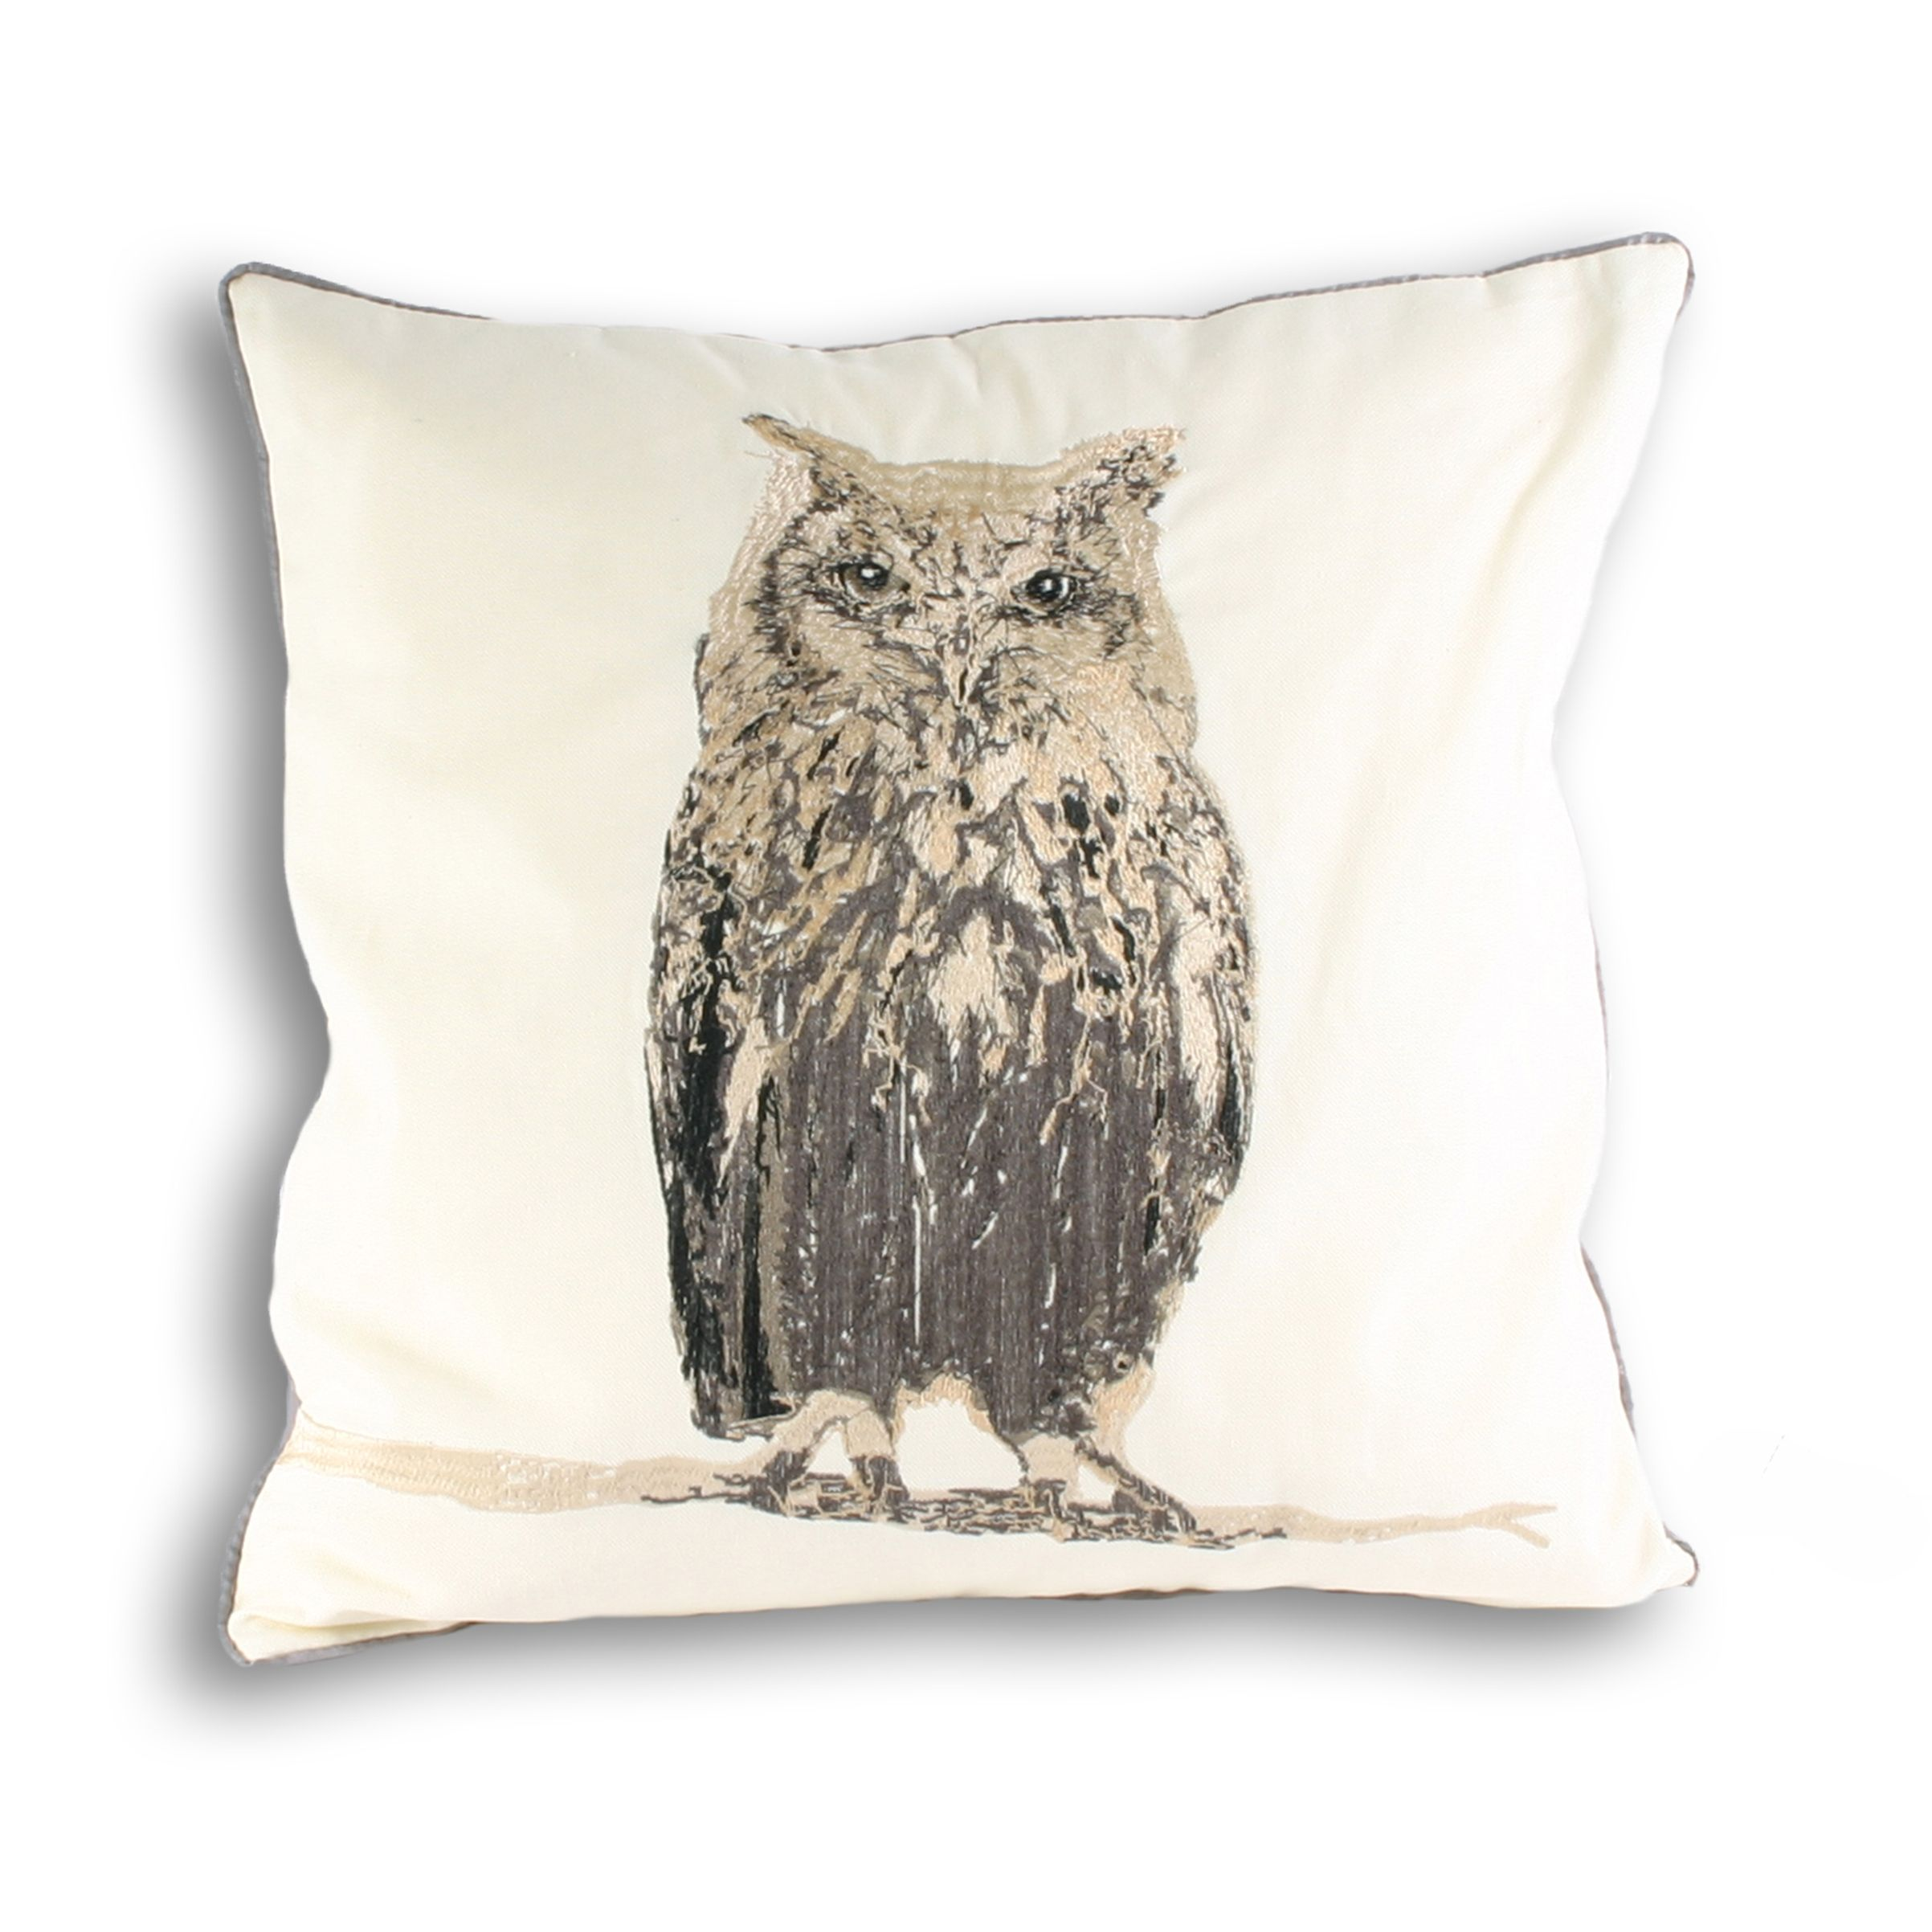 Owl Polyester Filled Cushion